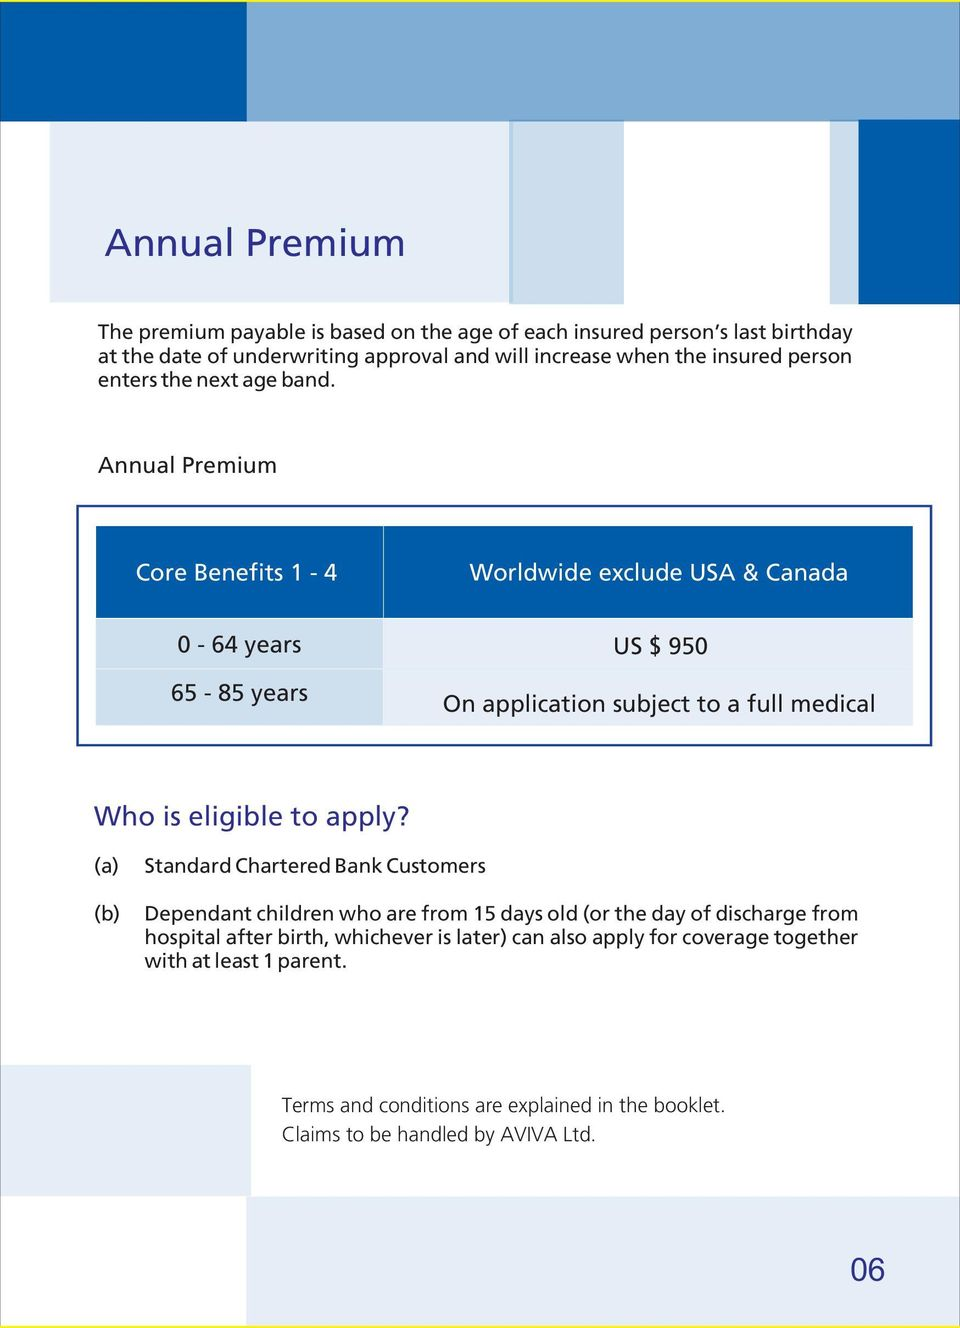 Annual Premium Core Benefits 1-4 Worldwide exclude USA & Canada 0-64 years US $ 950 65-85 years On application subject to a full medical Who is eligible to apply?